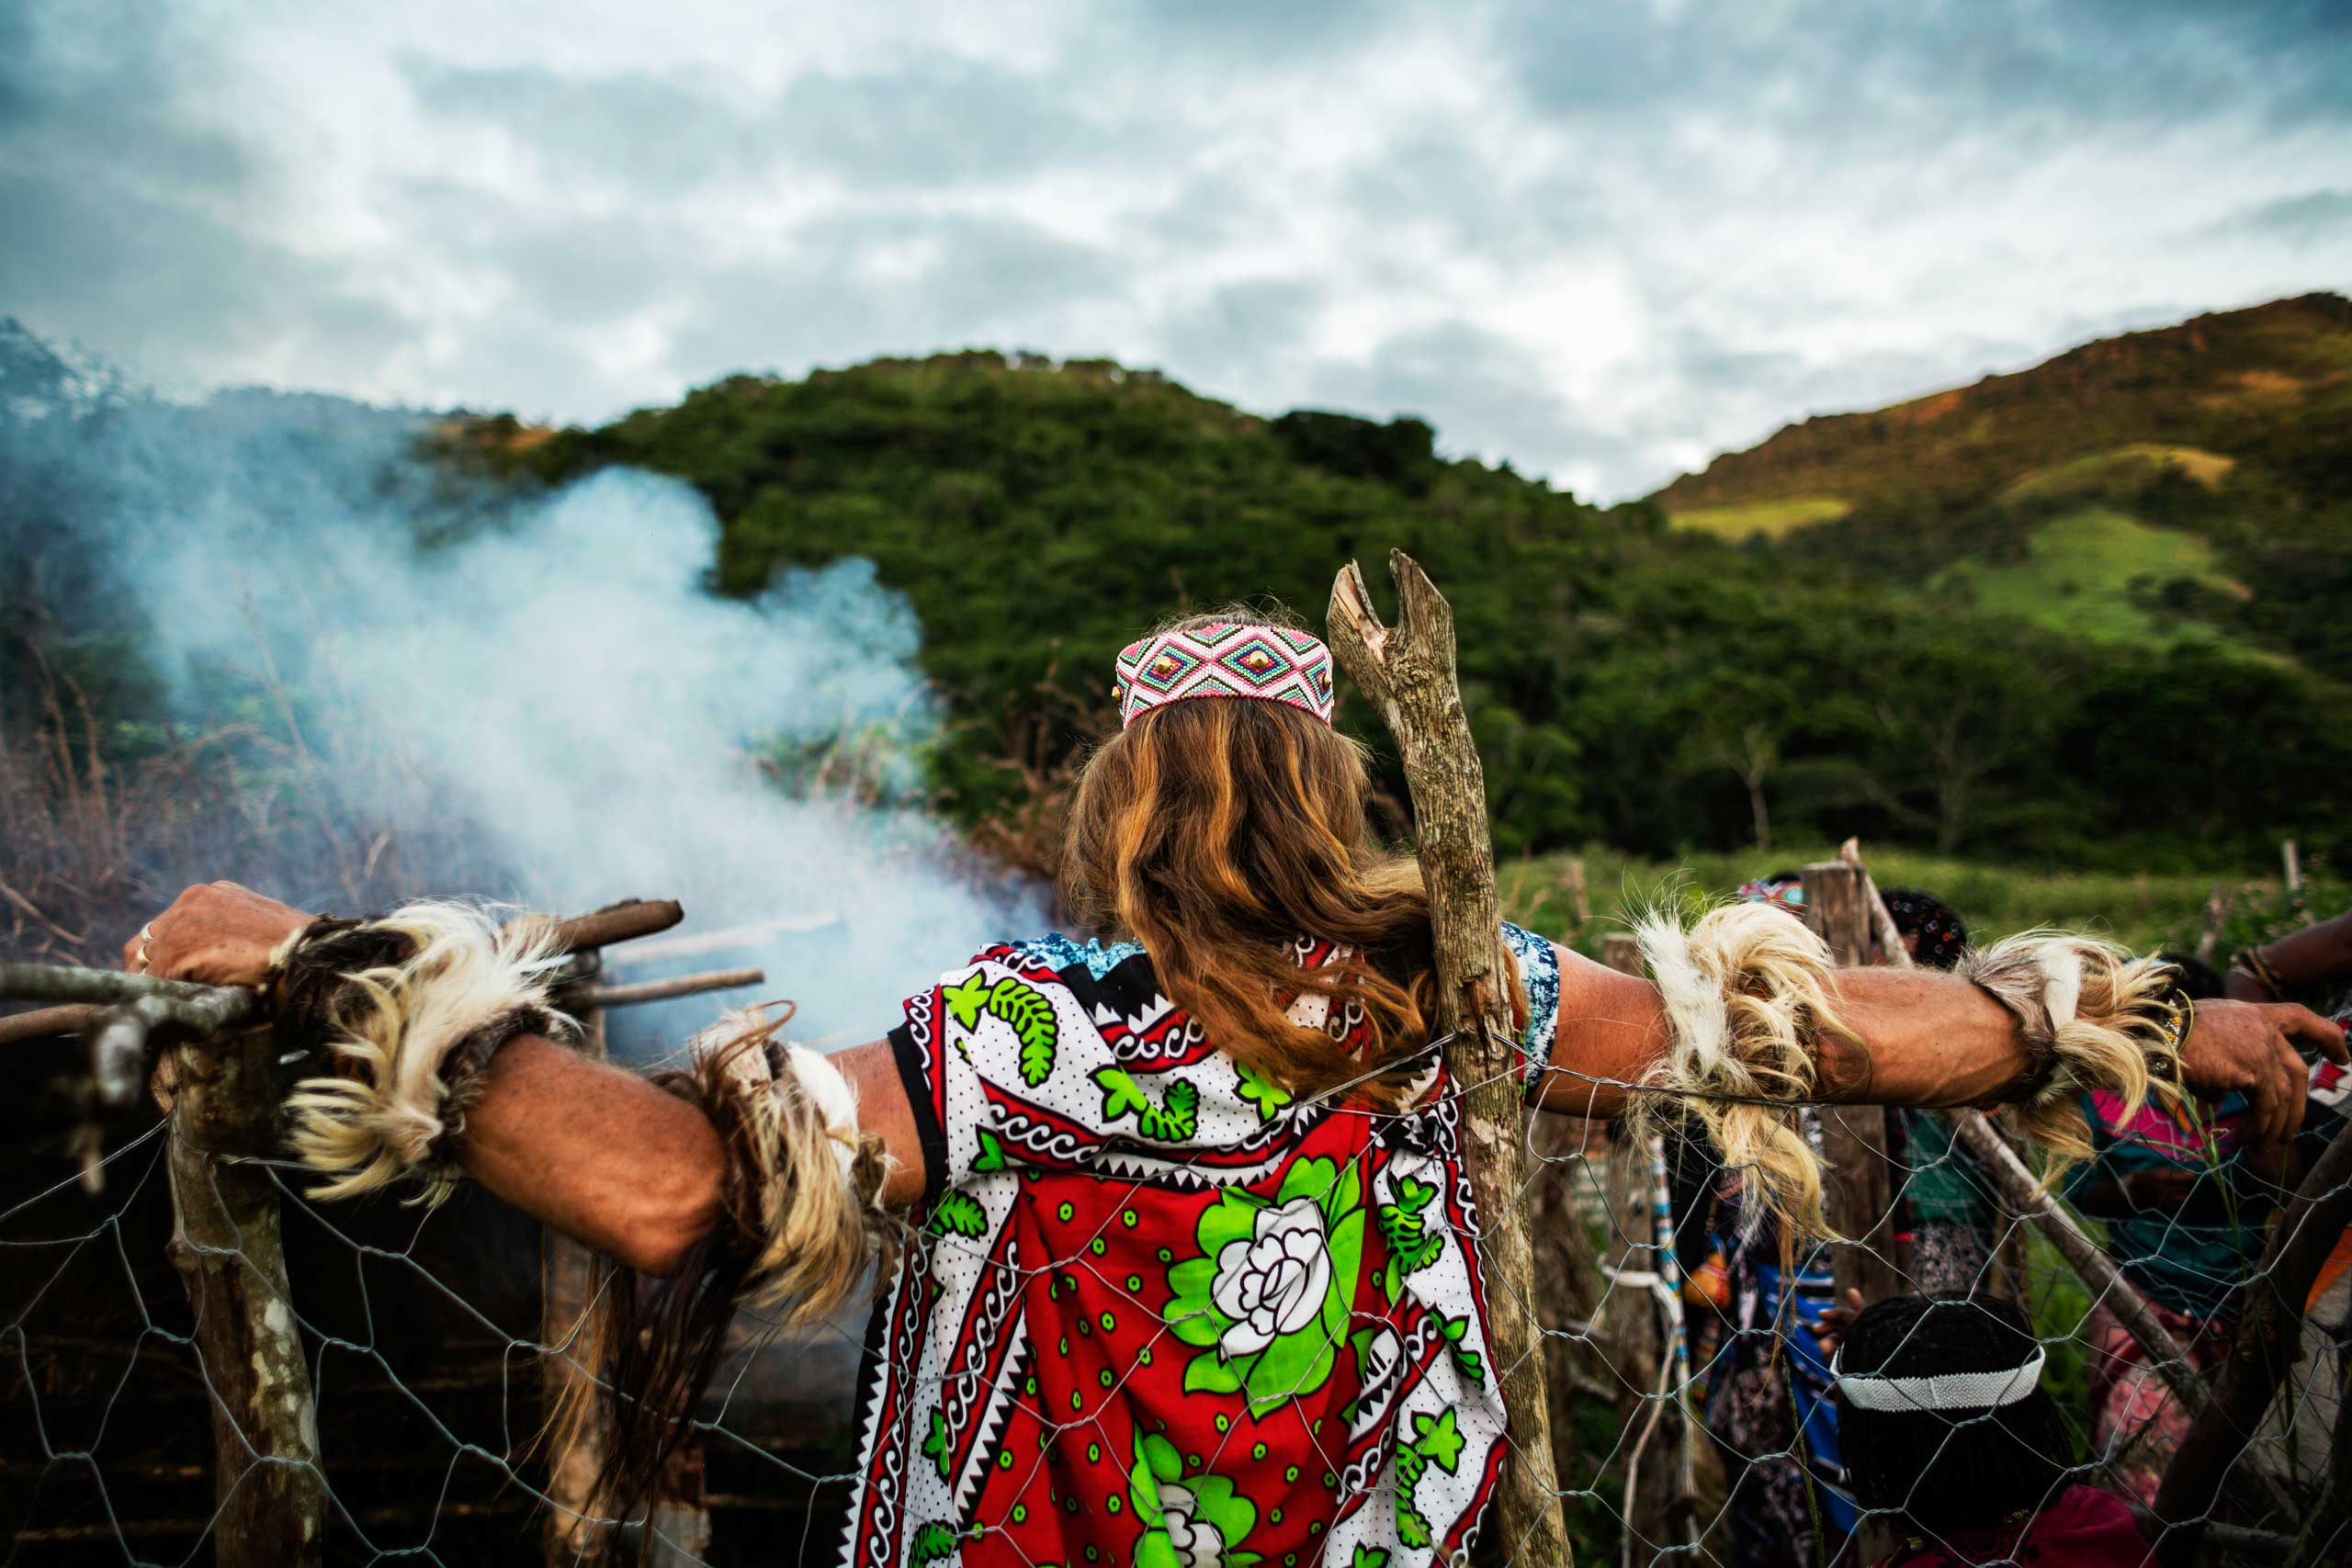 Chris Ntombemhlophe Reid stands with his fellow sangomas in a dedicated area to burn the bones of the sacrificed animals on Nov. 29, 2014 in Mdakane, Lusikisiki District, South Africa.